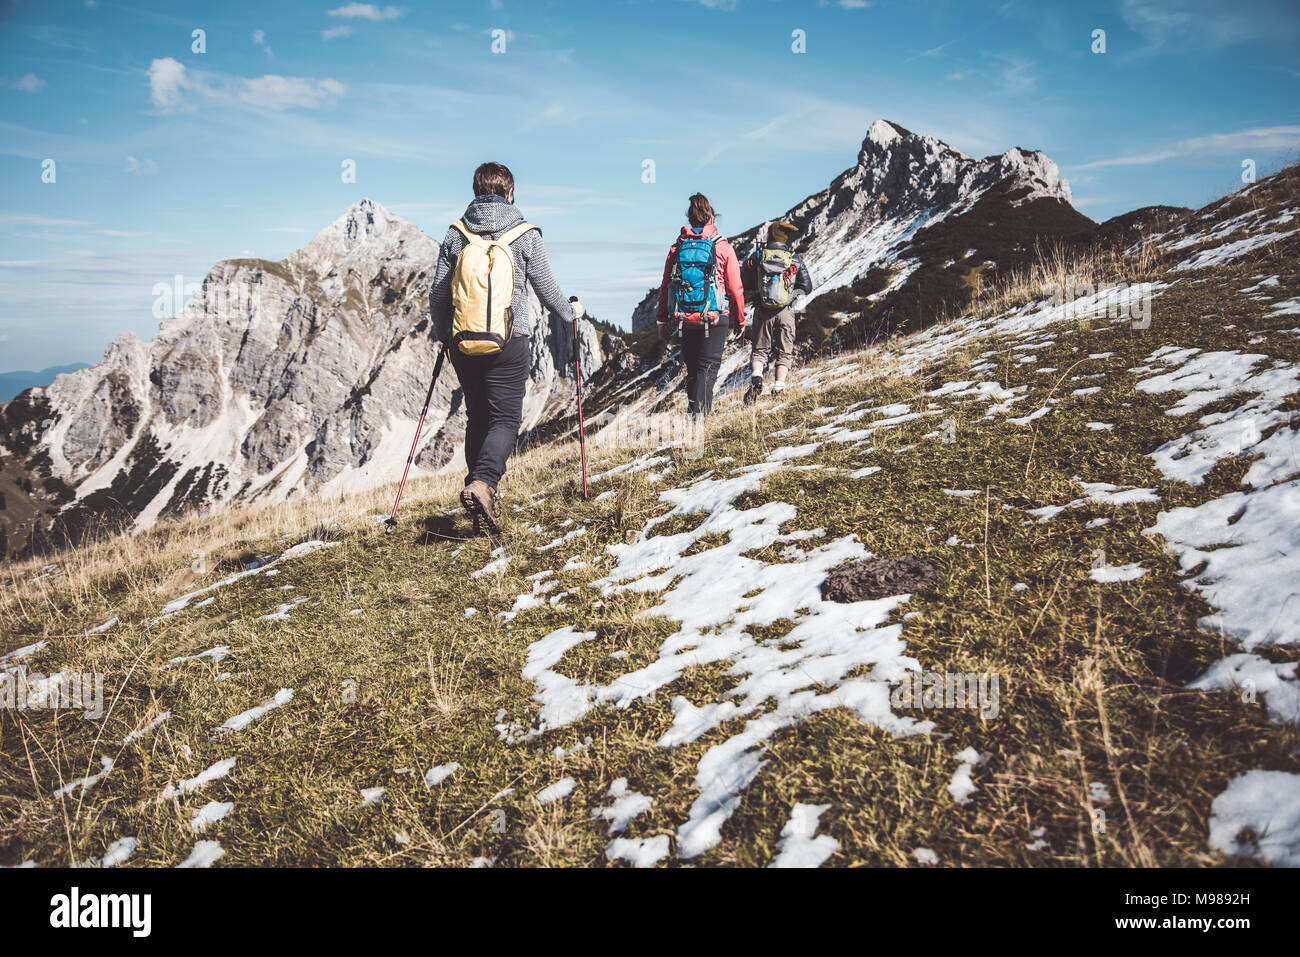 Austria, Tyrol, three hikers walking in the mountains - Stock Image